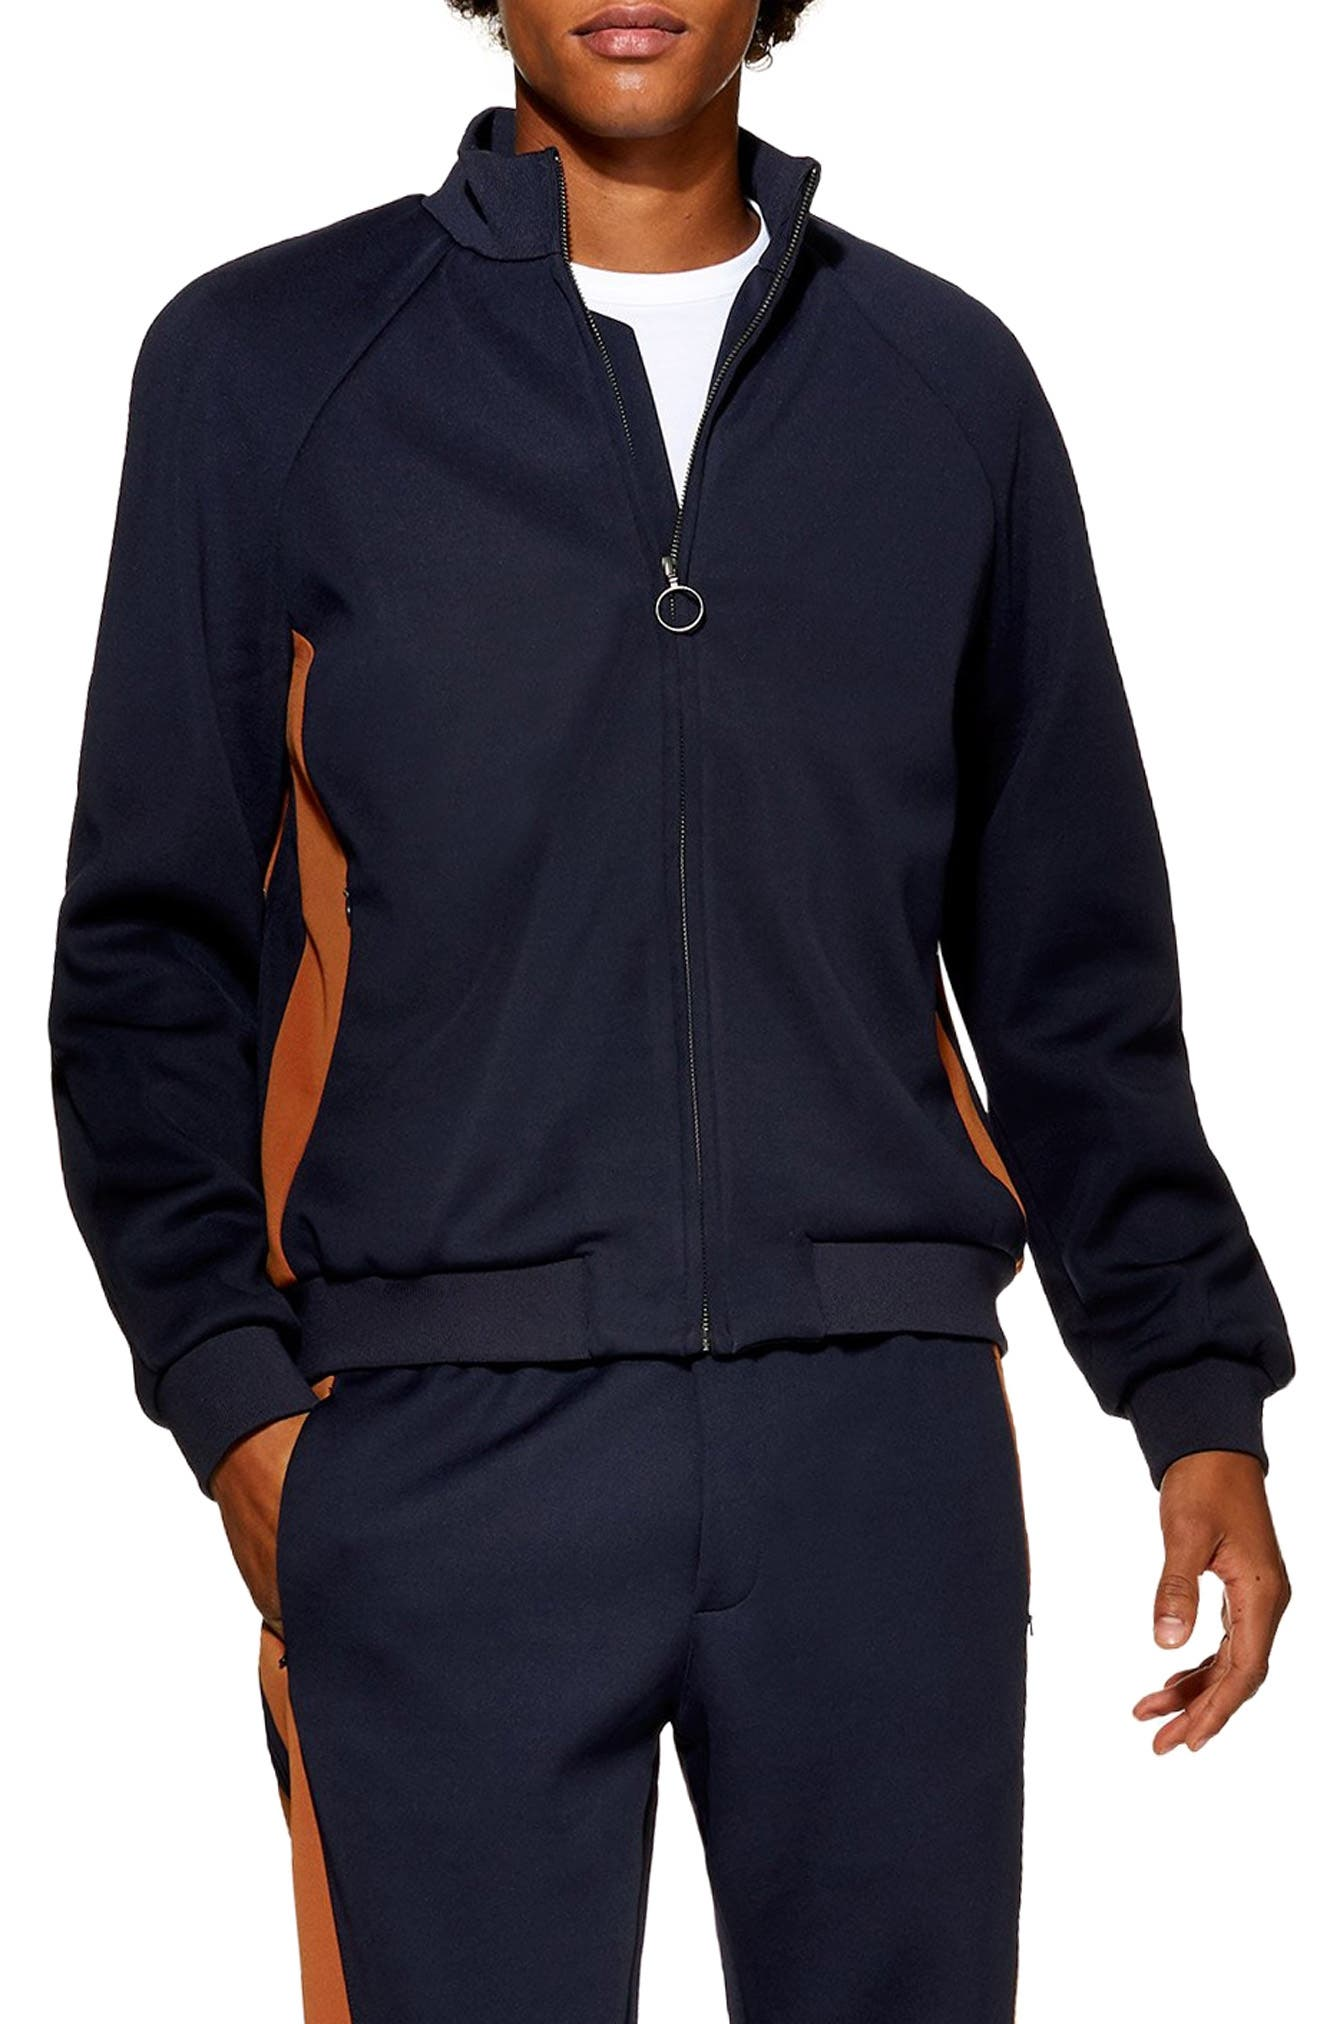 Domino Revere Zip Jacket,                             Main thumbnail 1, color,                             NAVY BLUE